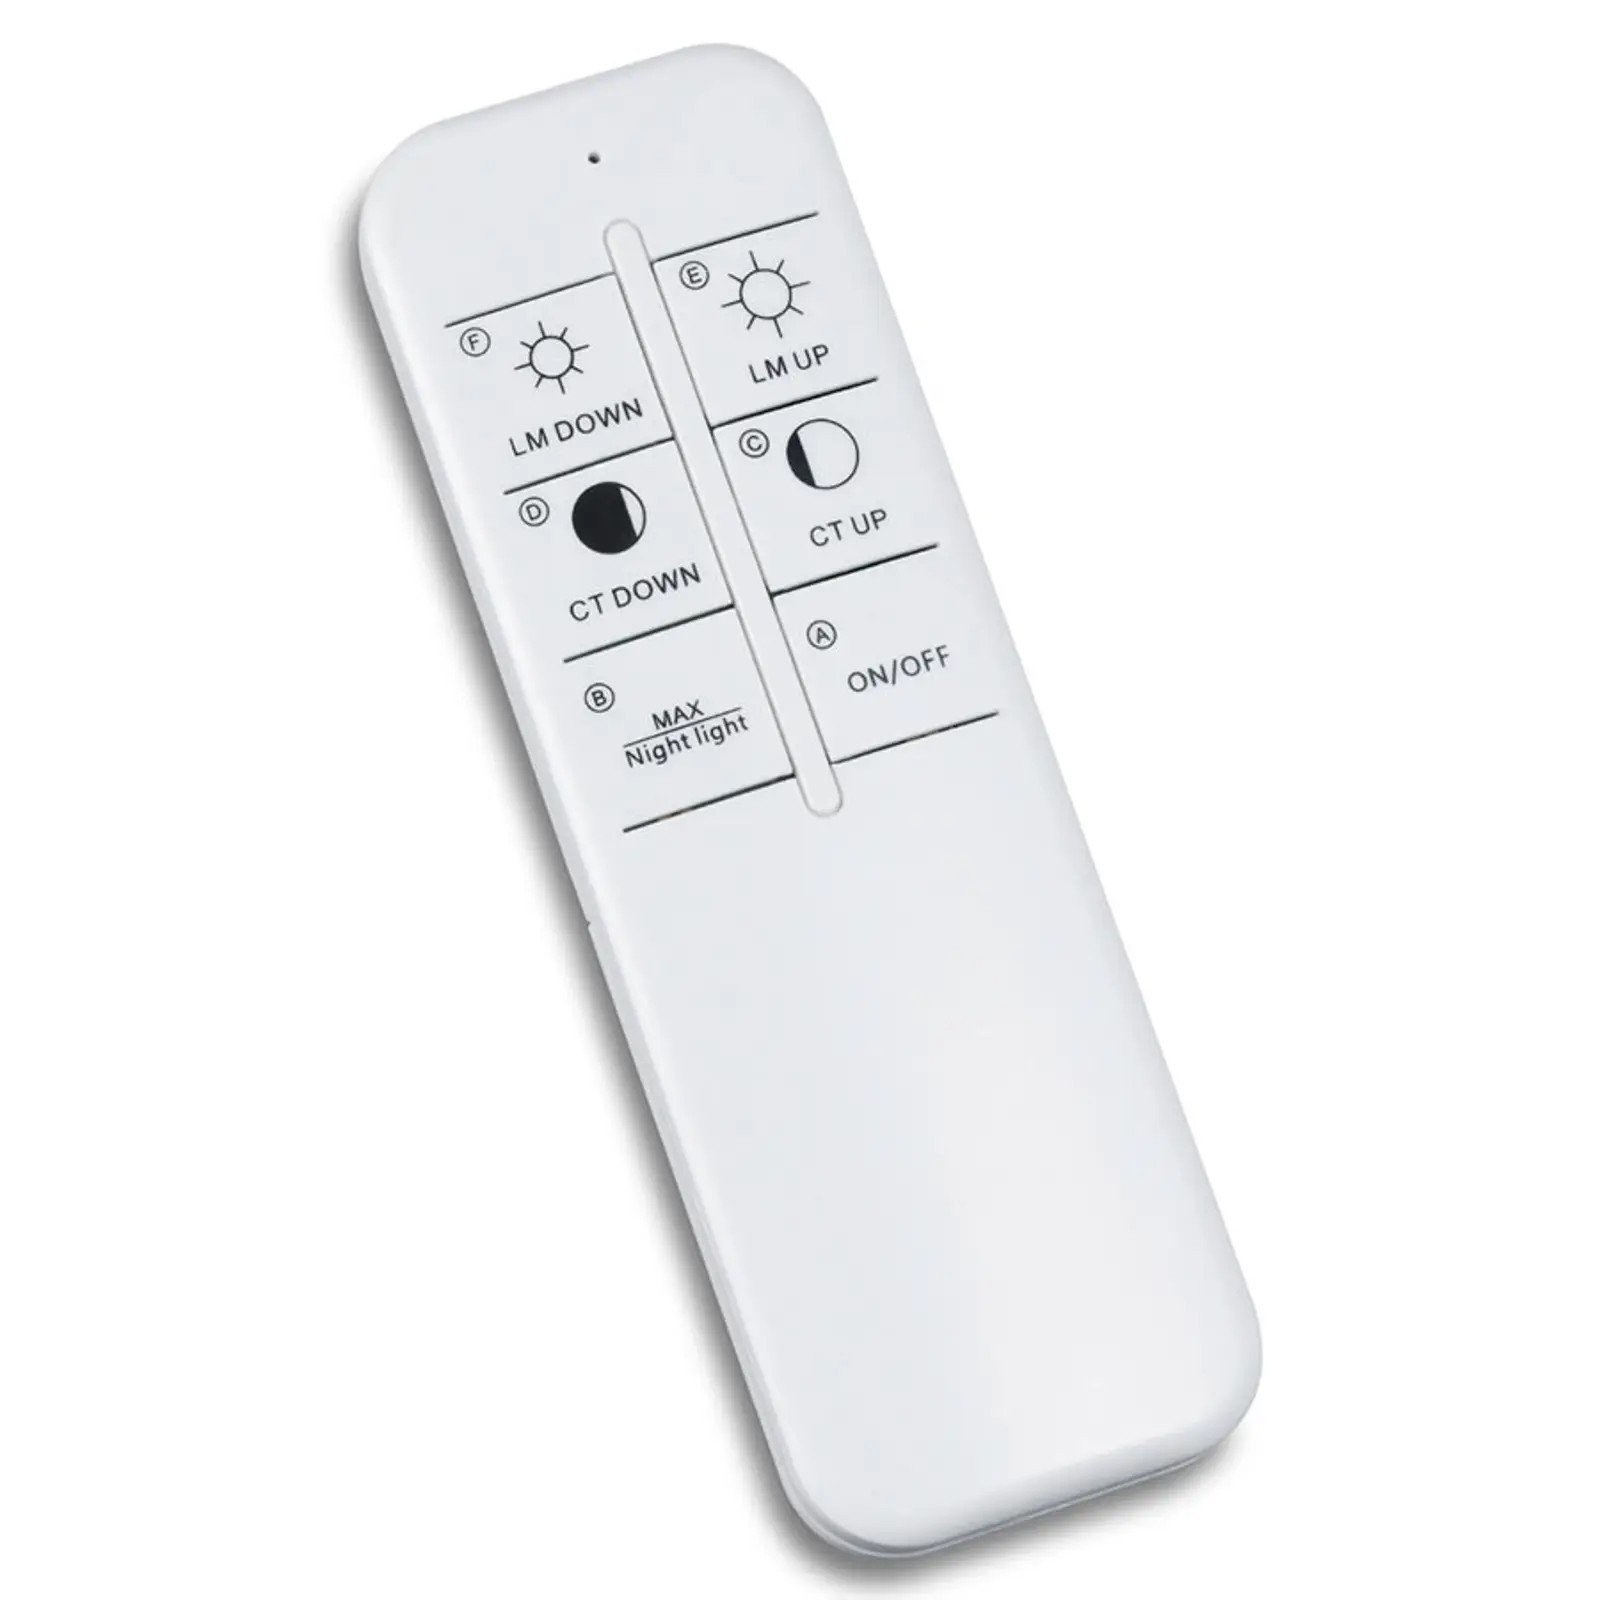 warmwit lamp remote